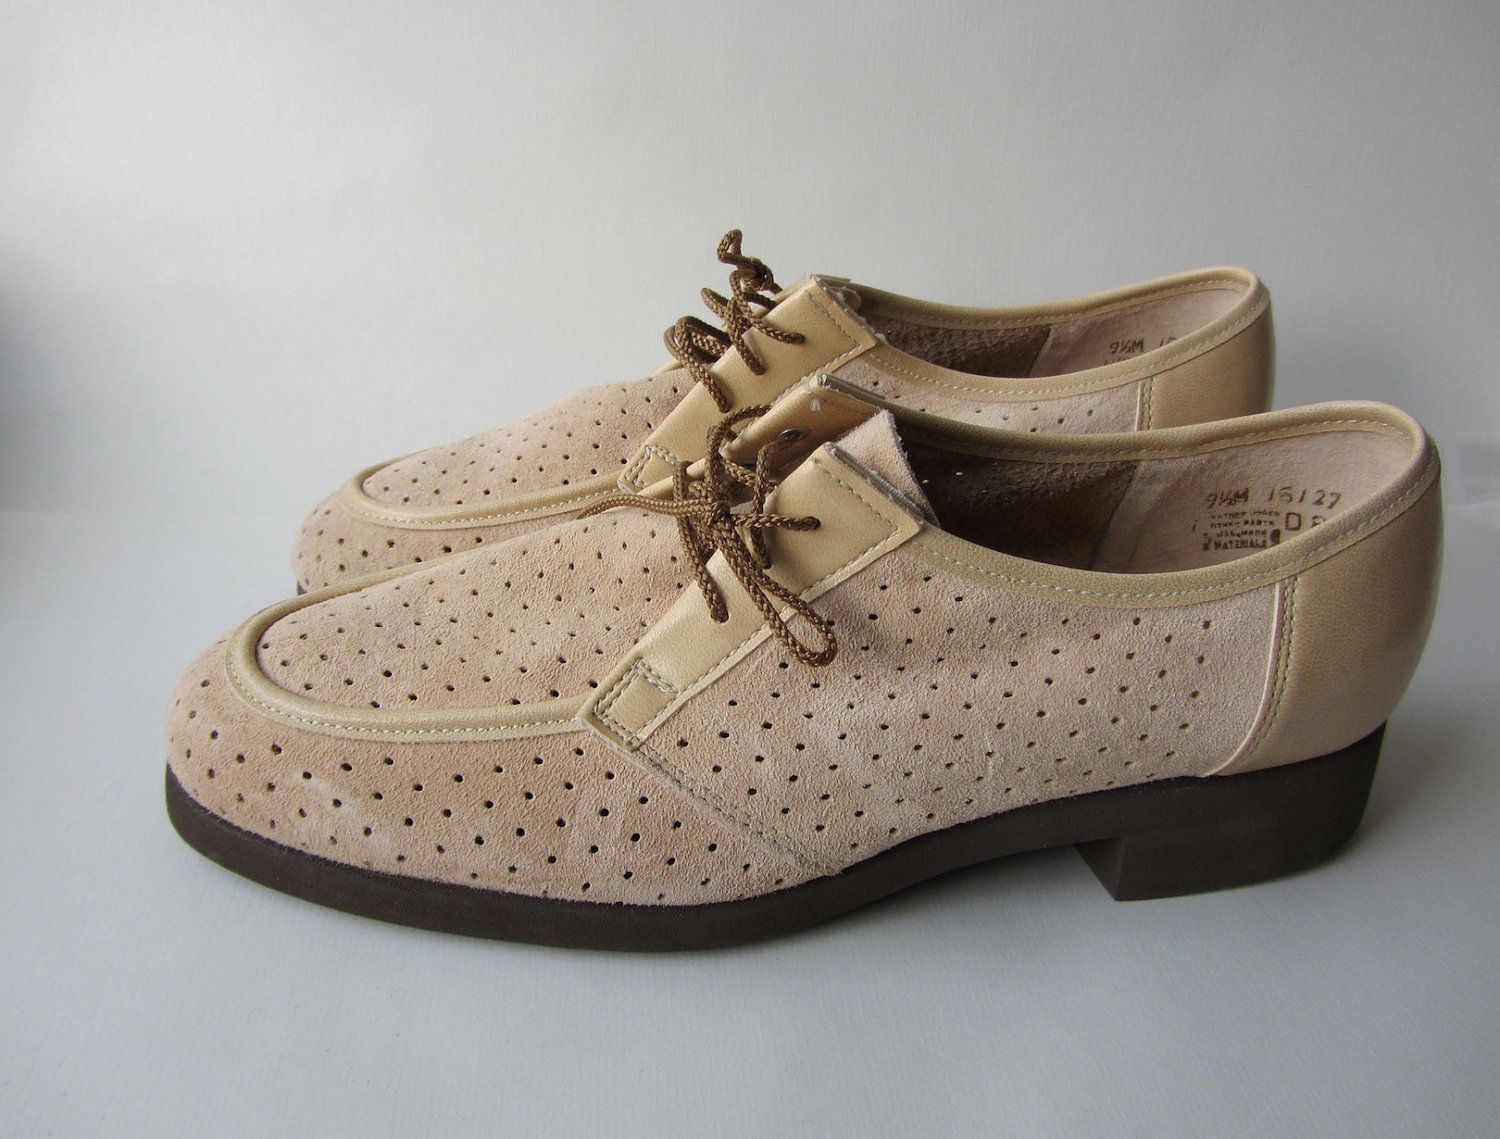 Mens Vintage Shoes Oxford Perforated Nude Hush Puppies